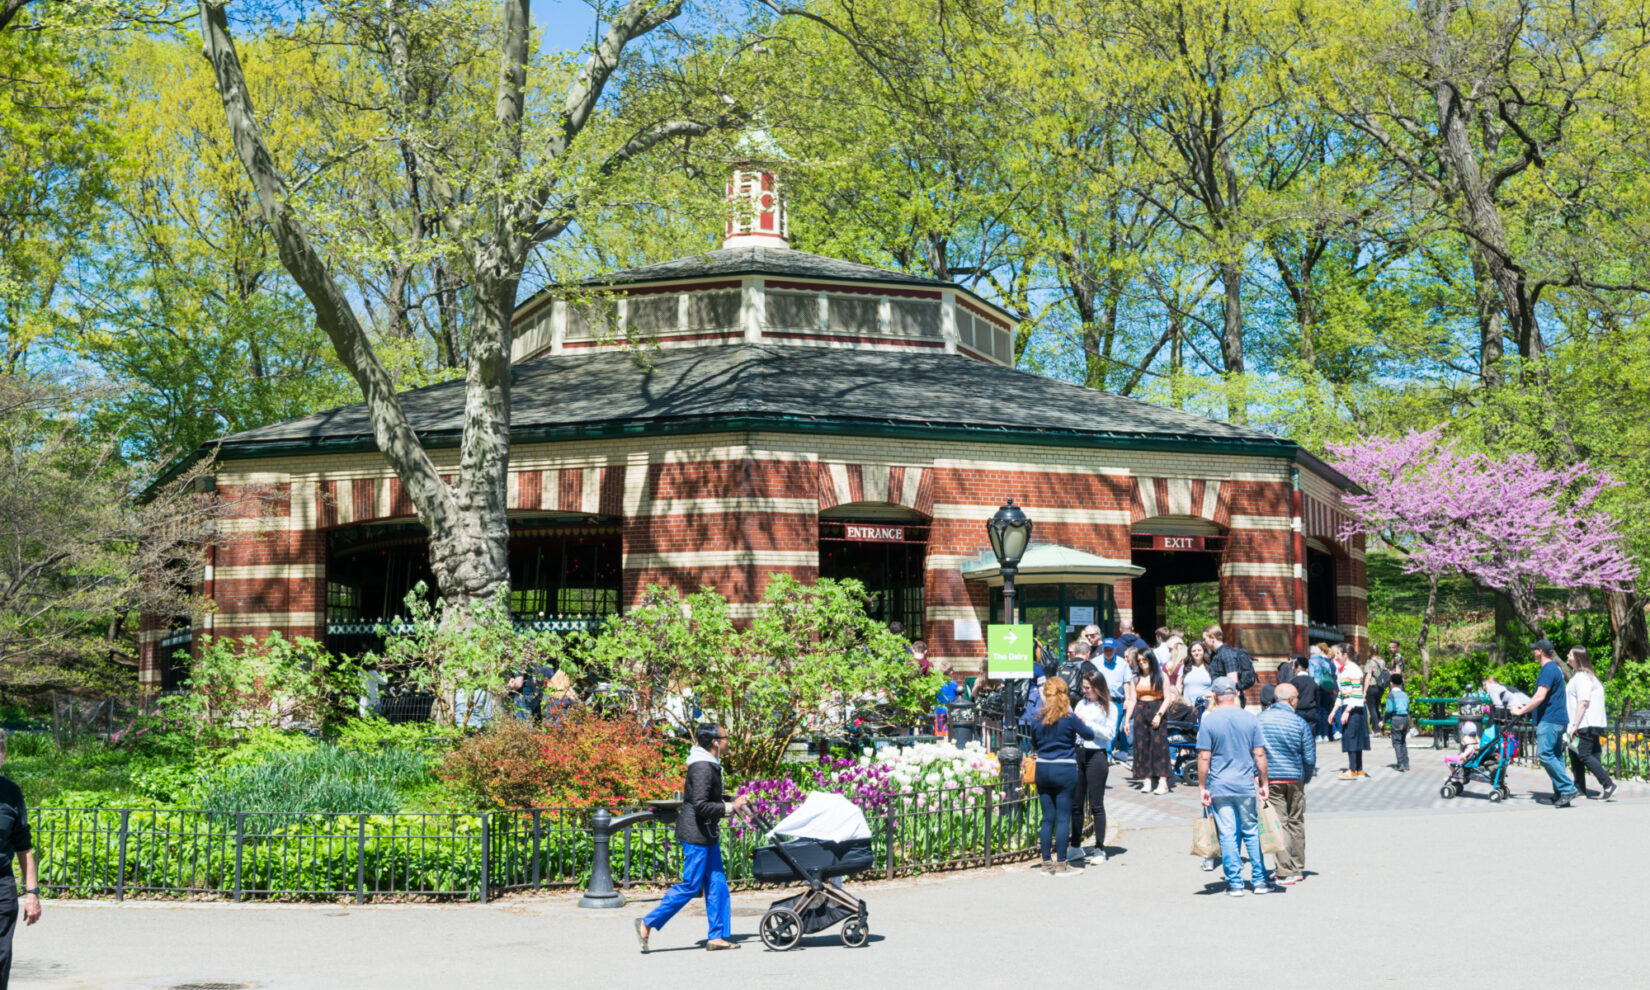 Families with toddlers and strollers crowd the plaza in front of the carousel on a clear spring day